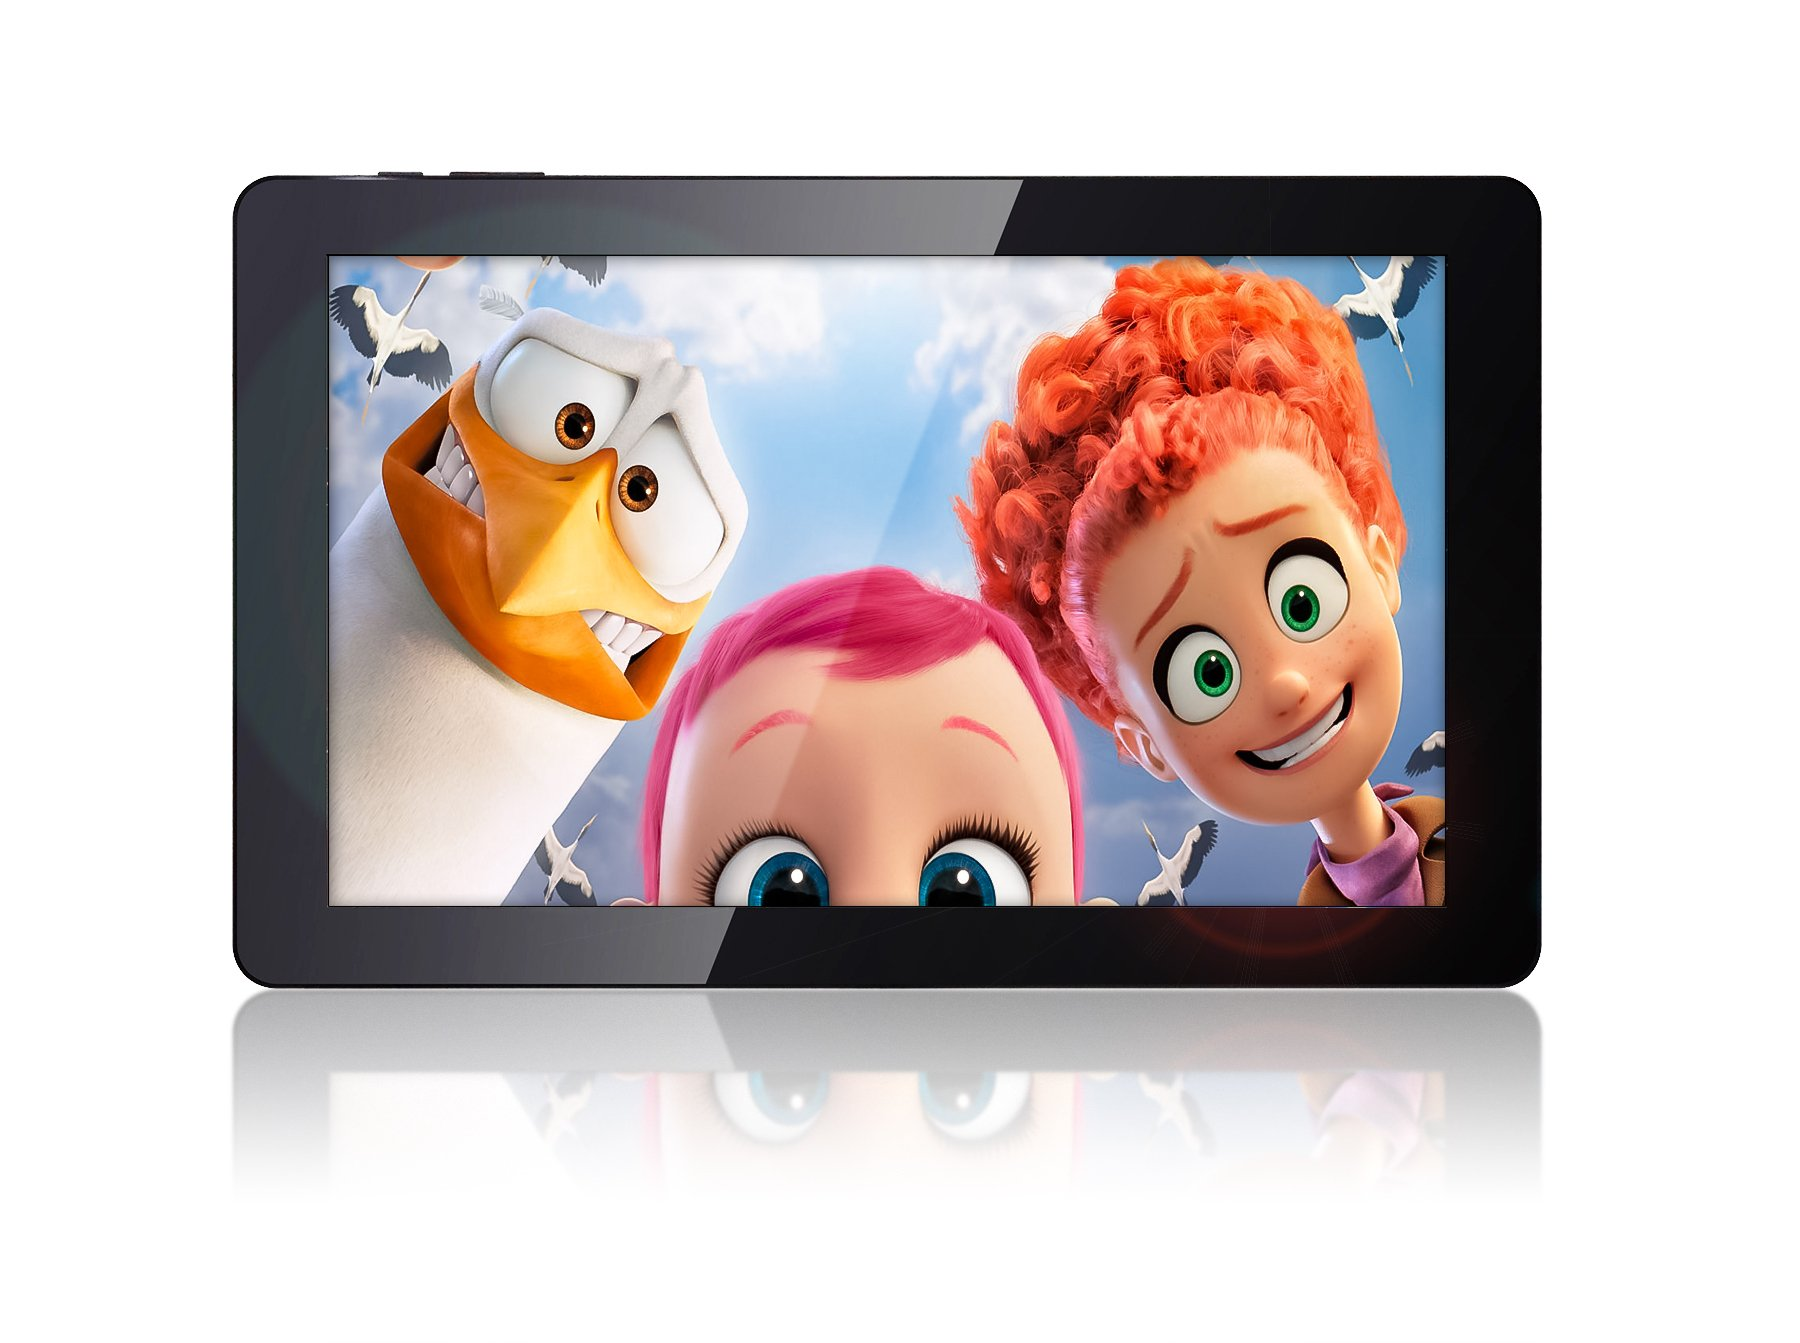 Fusion5 10.6'' Android Tablet PC - 2GB RAM, Full HD, Android 6.0 Marshmallow, 5MP and 2MP Cameras, 16GB Storage, Bluetooth, 108 Octa core Tablet PC (Full HD) by Fusion5